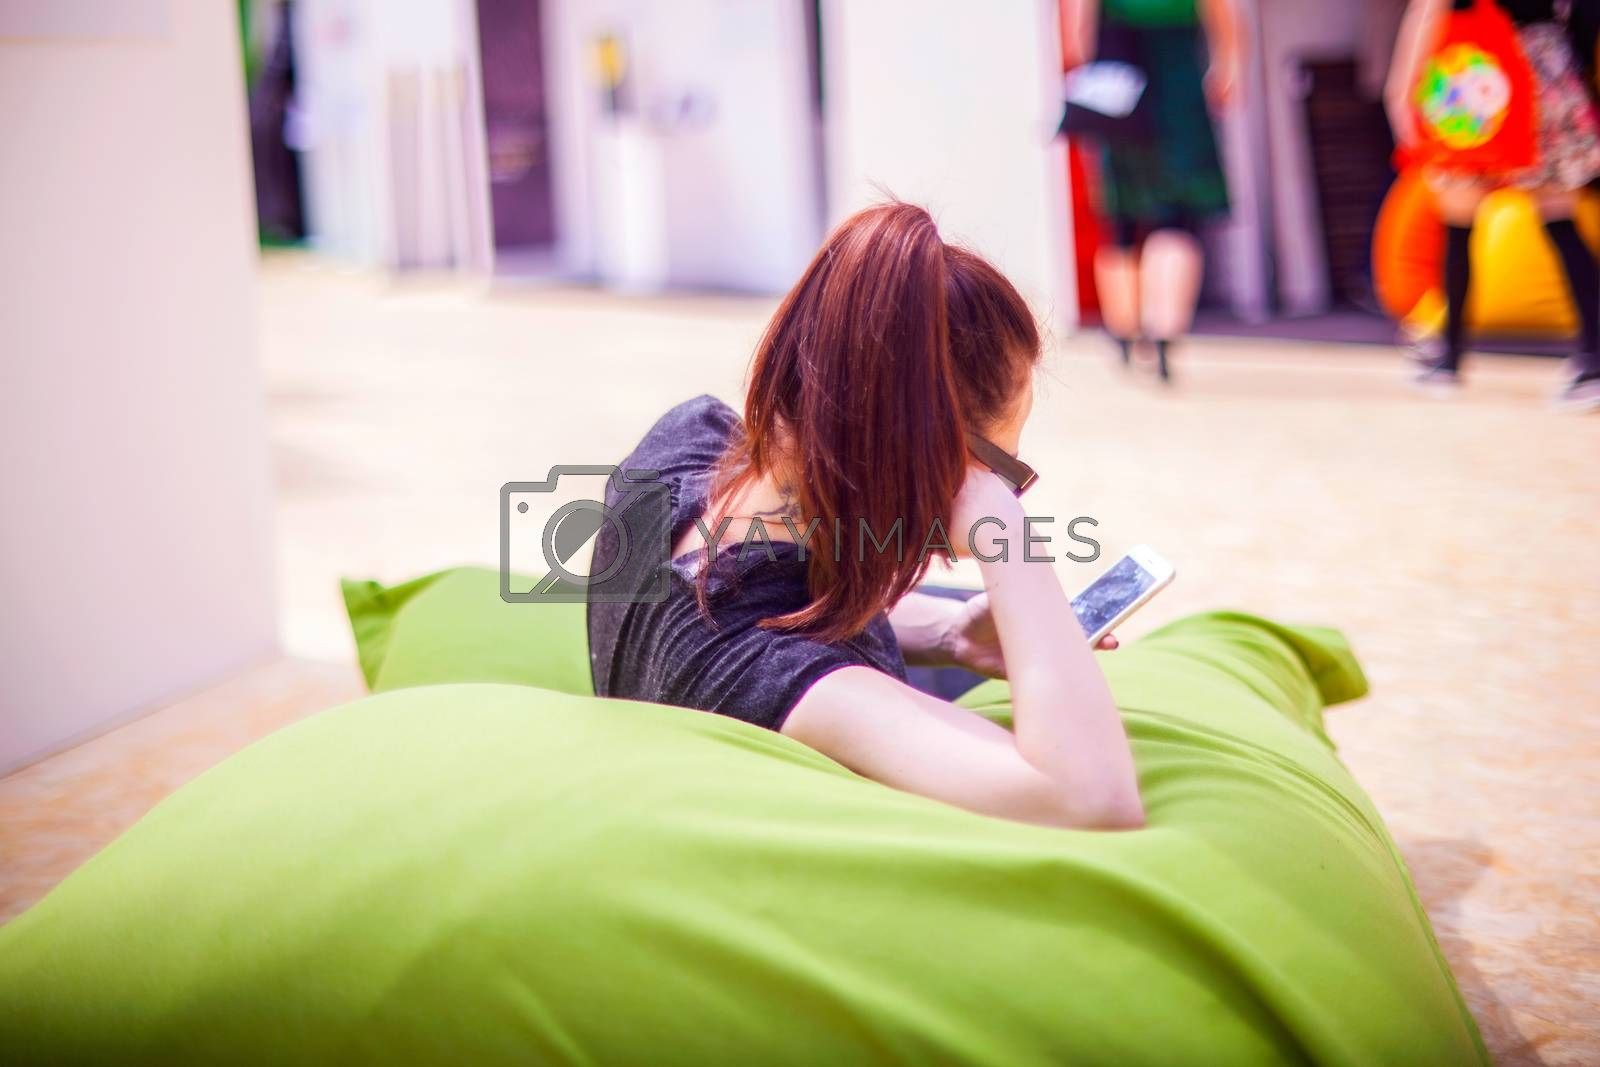 Pretty woman reading message on smartphone by bepsimage